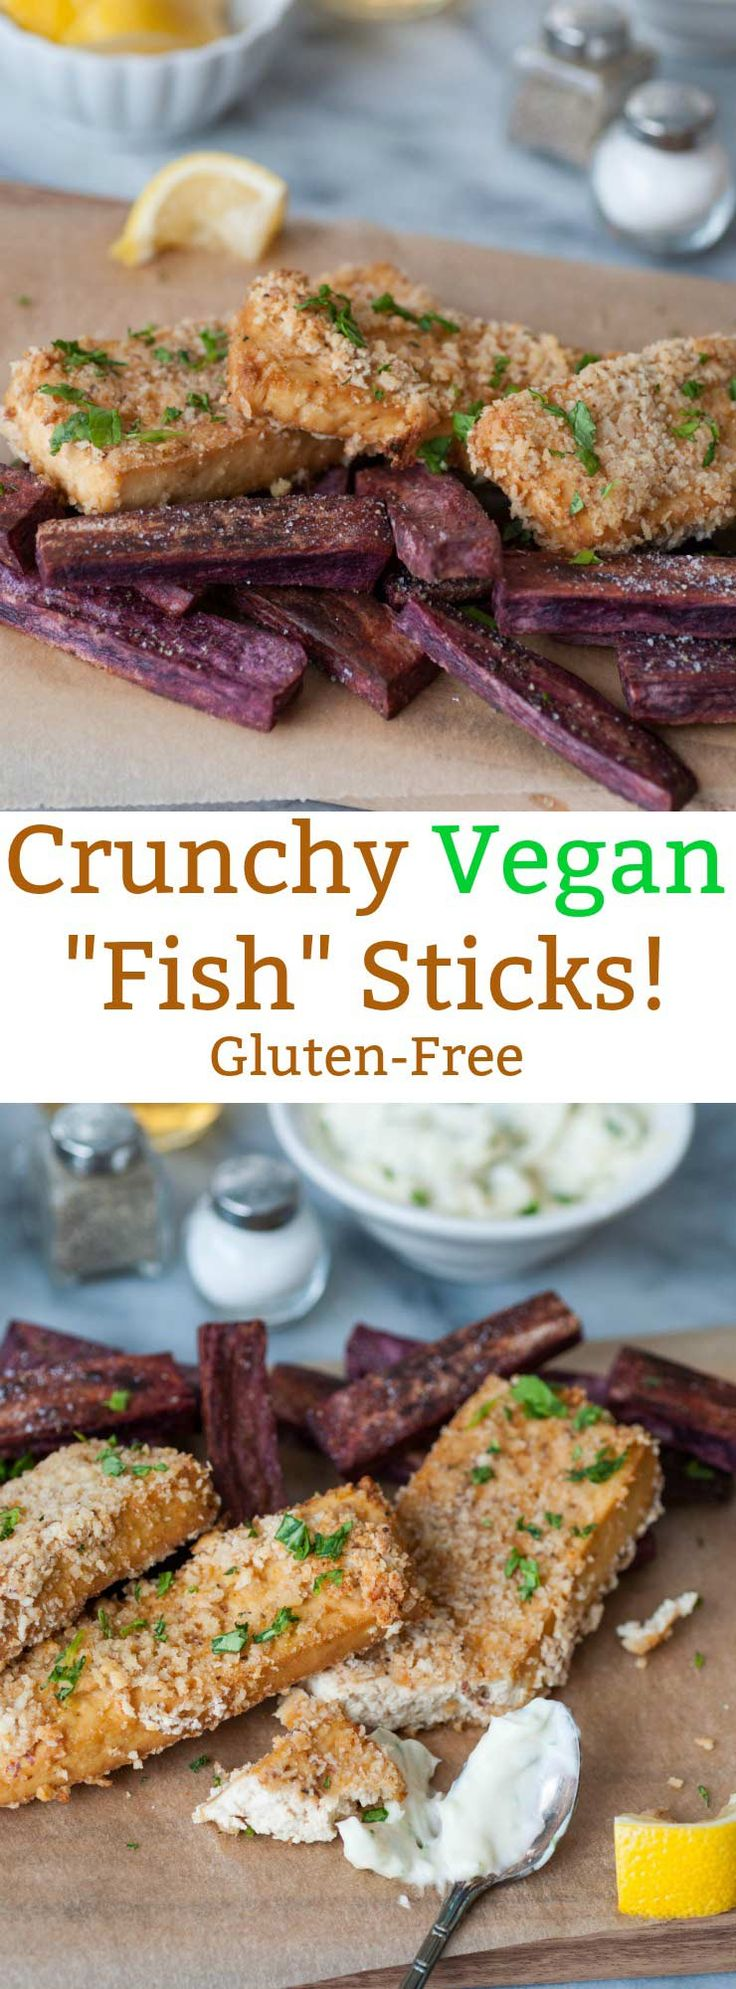 Crunchy Oven Fried Vegan Fish Sticks! These are gluten-free and oil-free! They have the perfect crunch and a nice flavor. Make them for dinner or for appetizers.